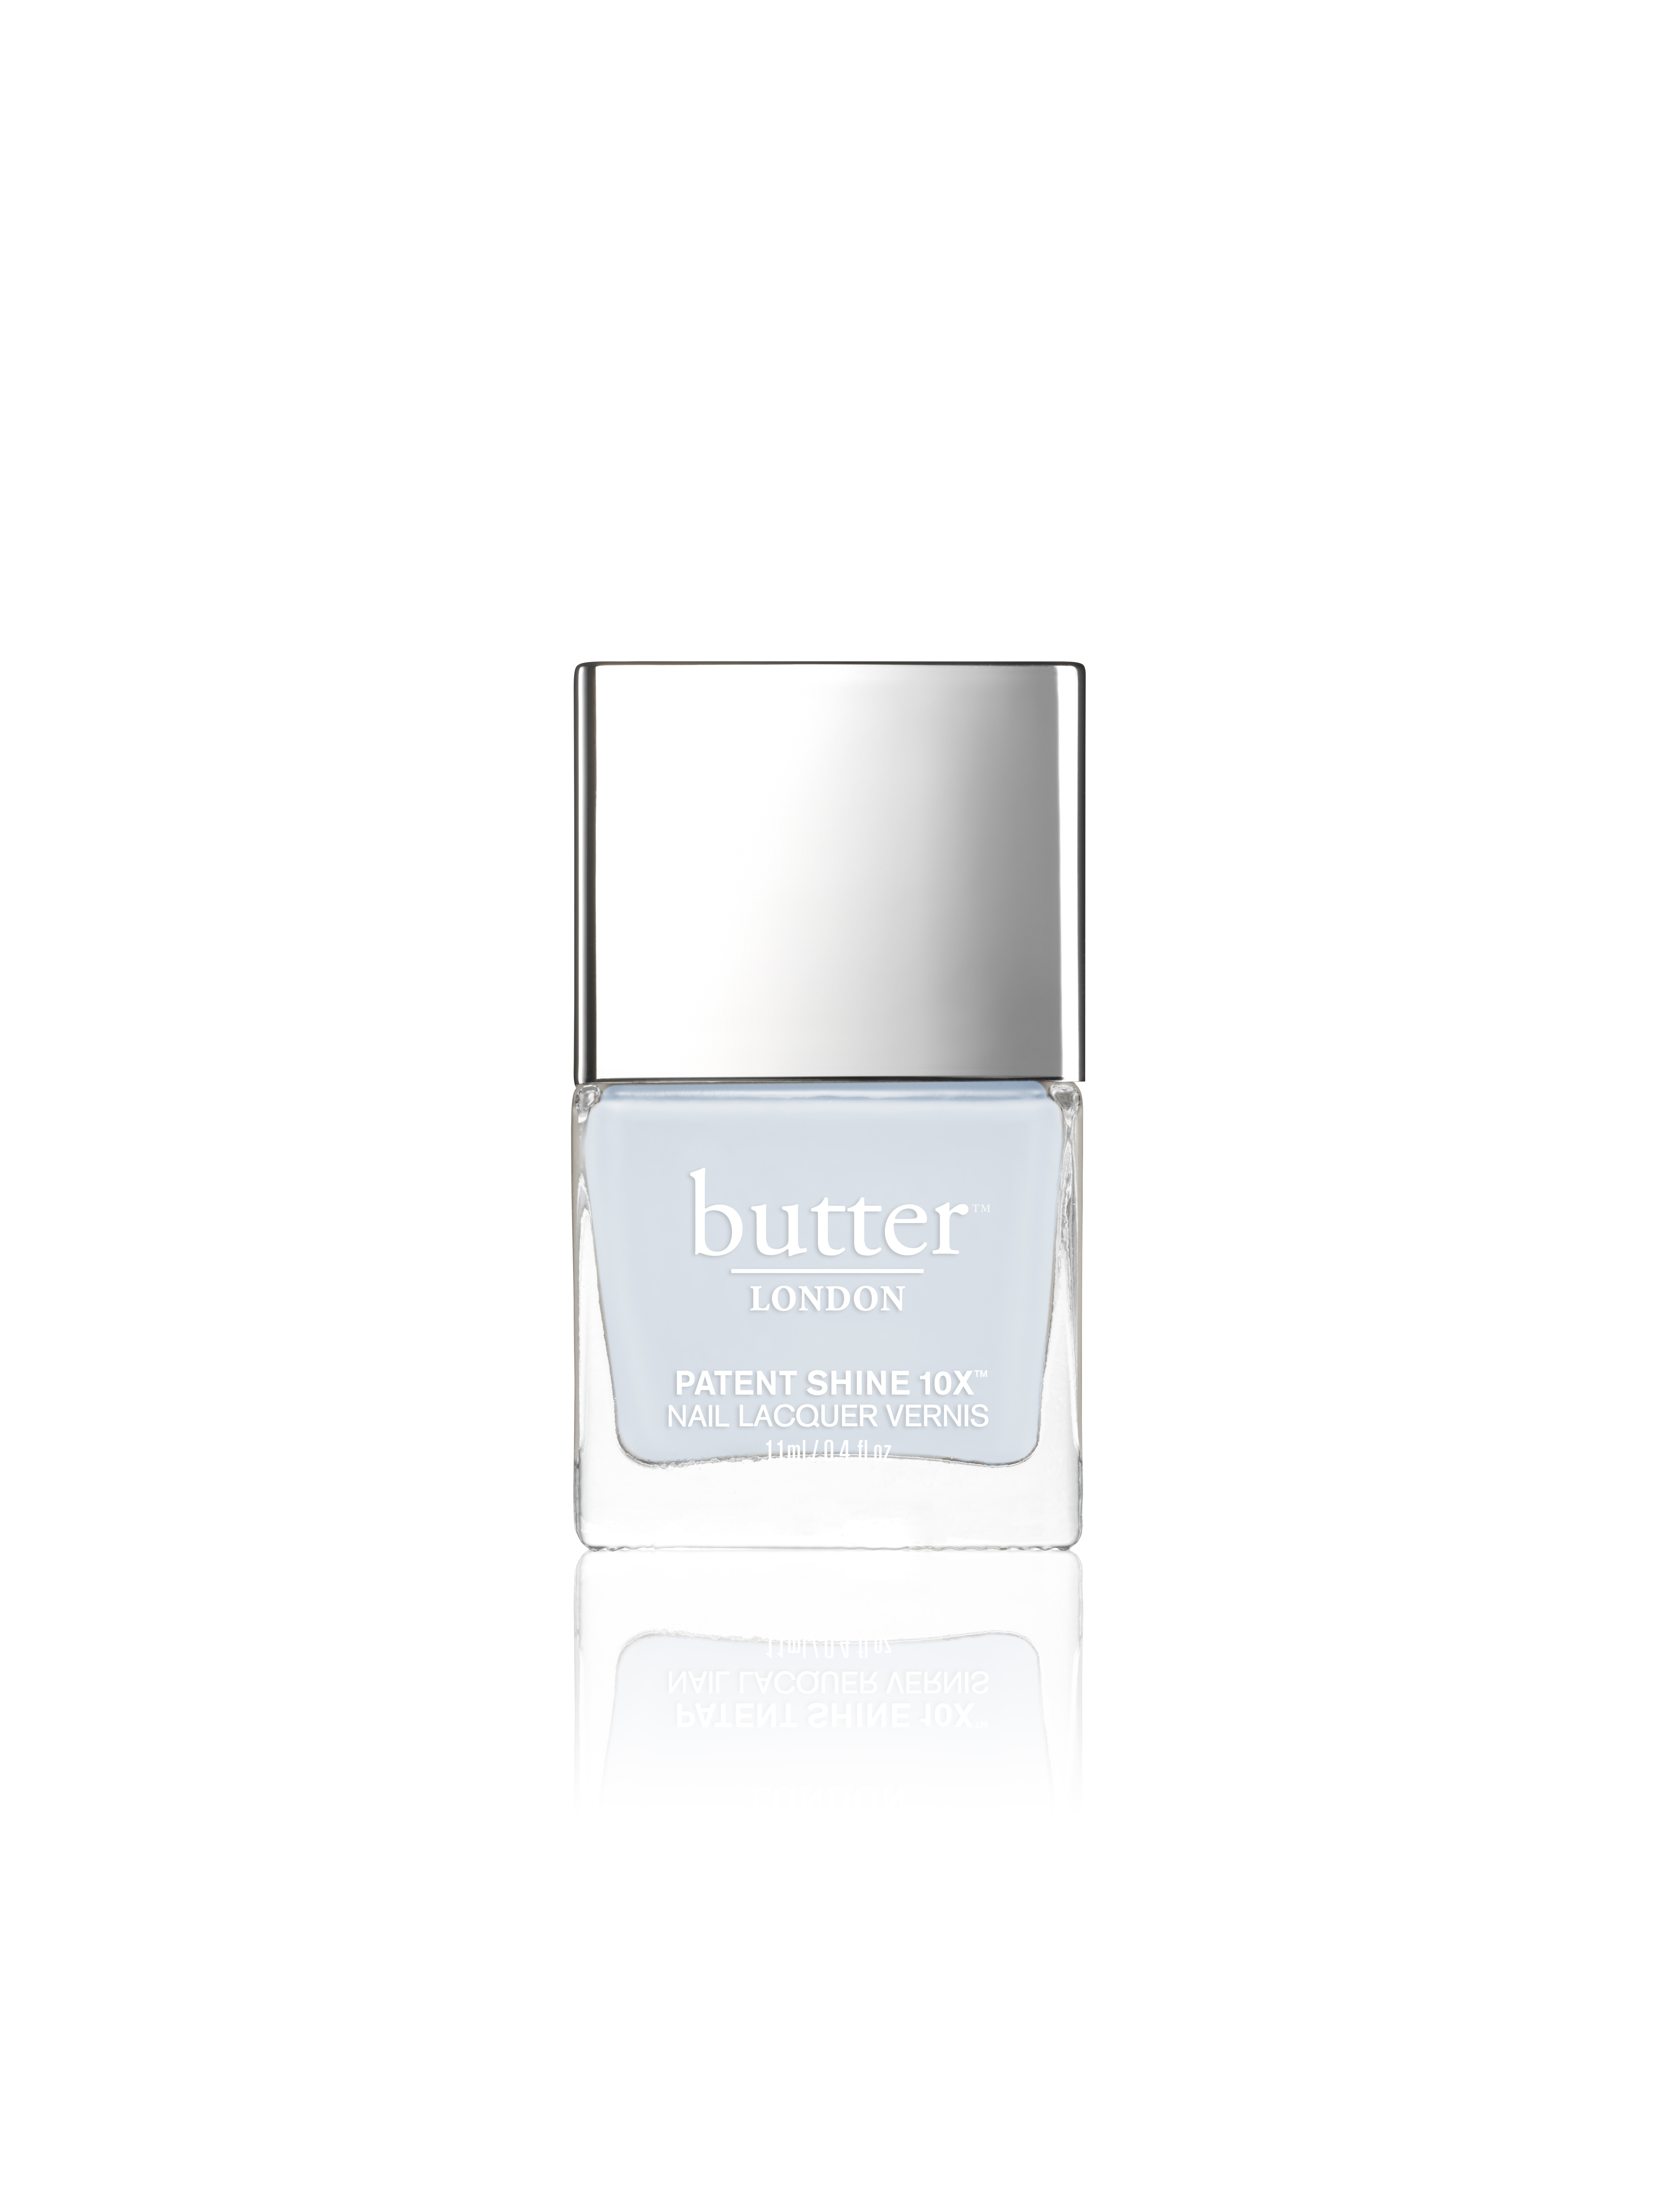 butter LONDON's Patent Shine Nail Polish in Candy Floss